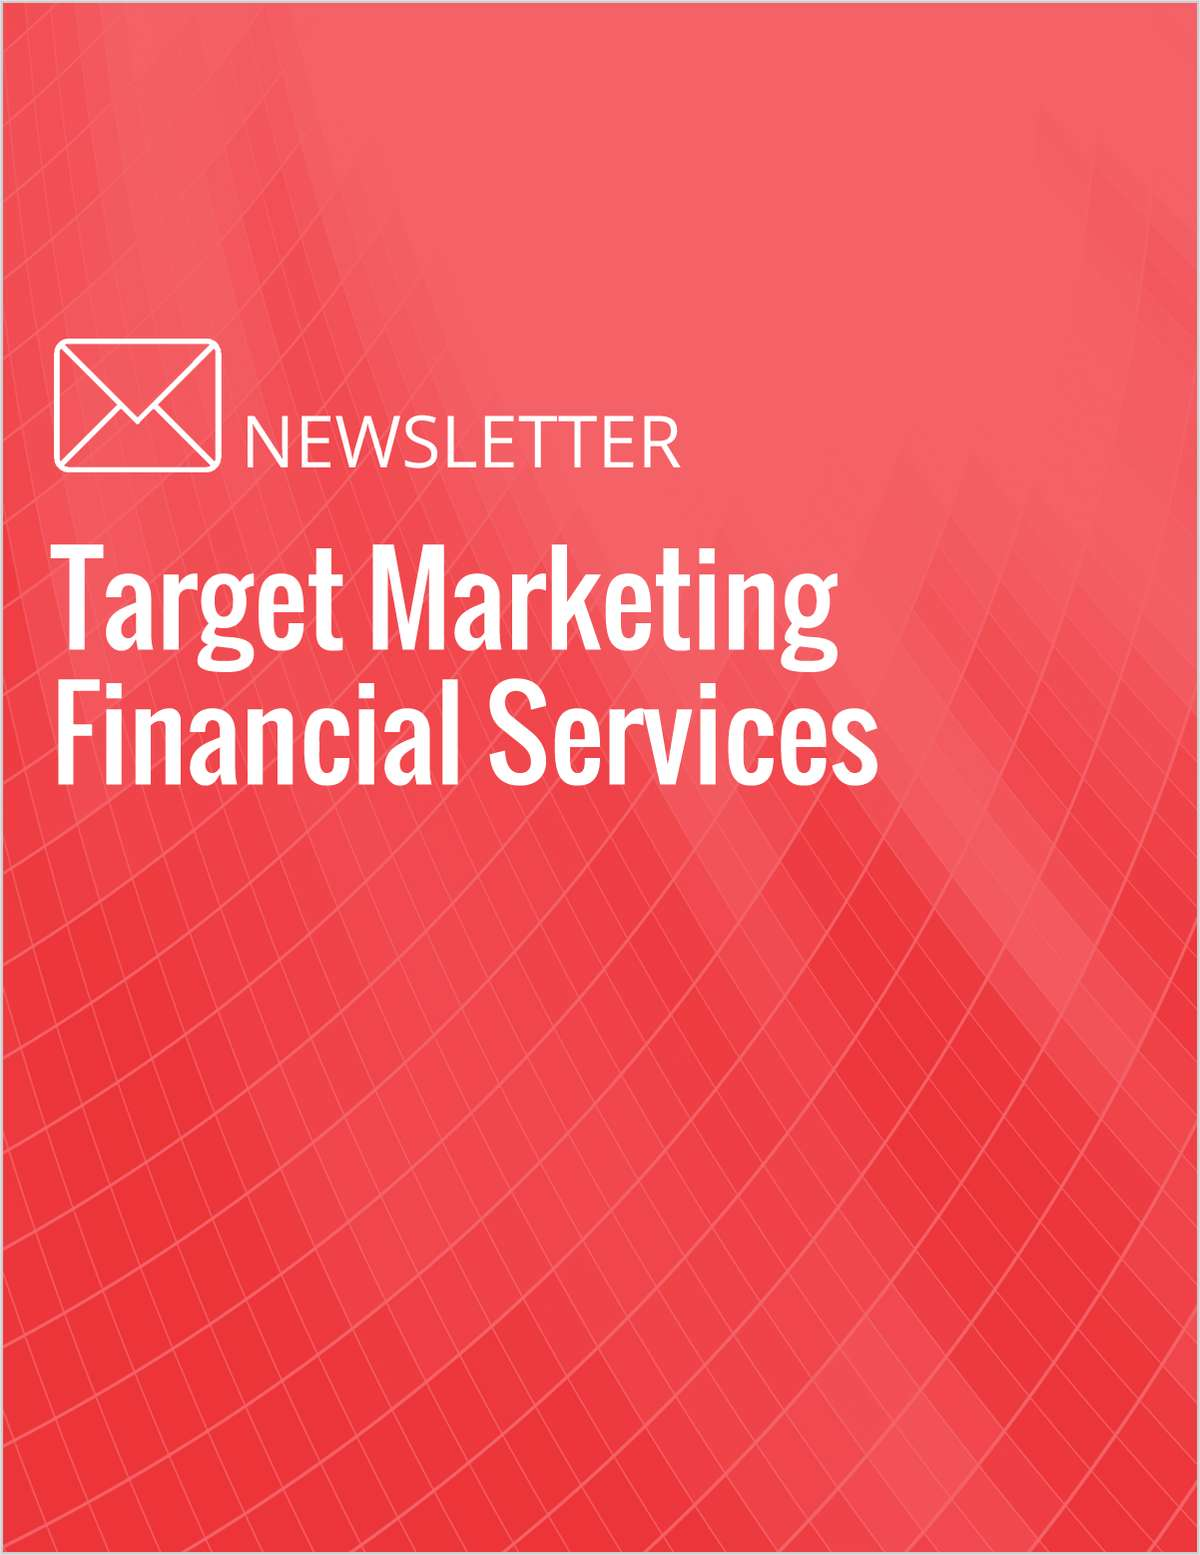 marketing and financial services Download this ebook now to learn how financial services can embrace marketing automation, social media, content marketing, and more.